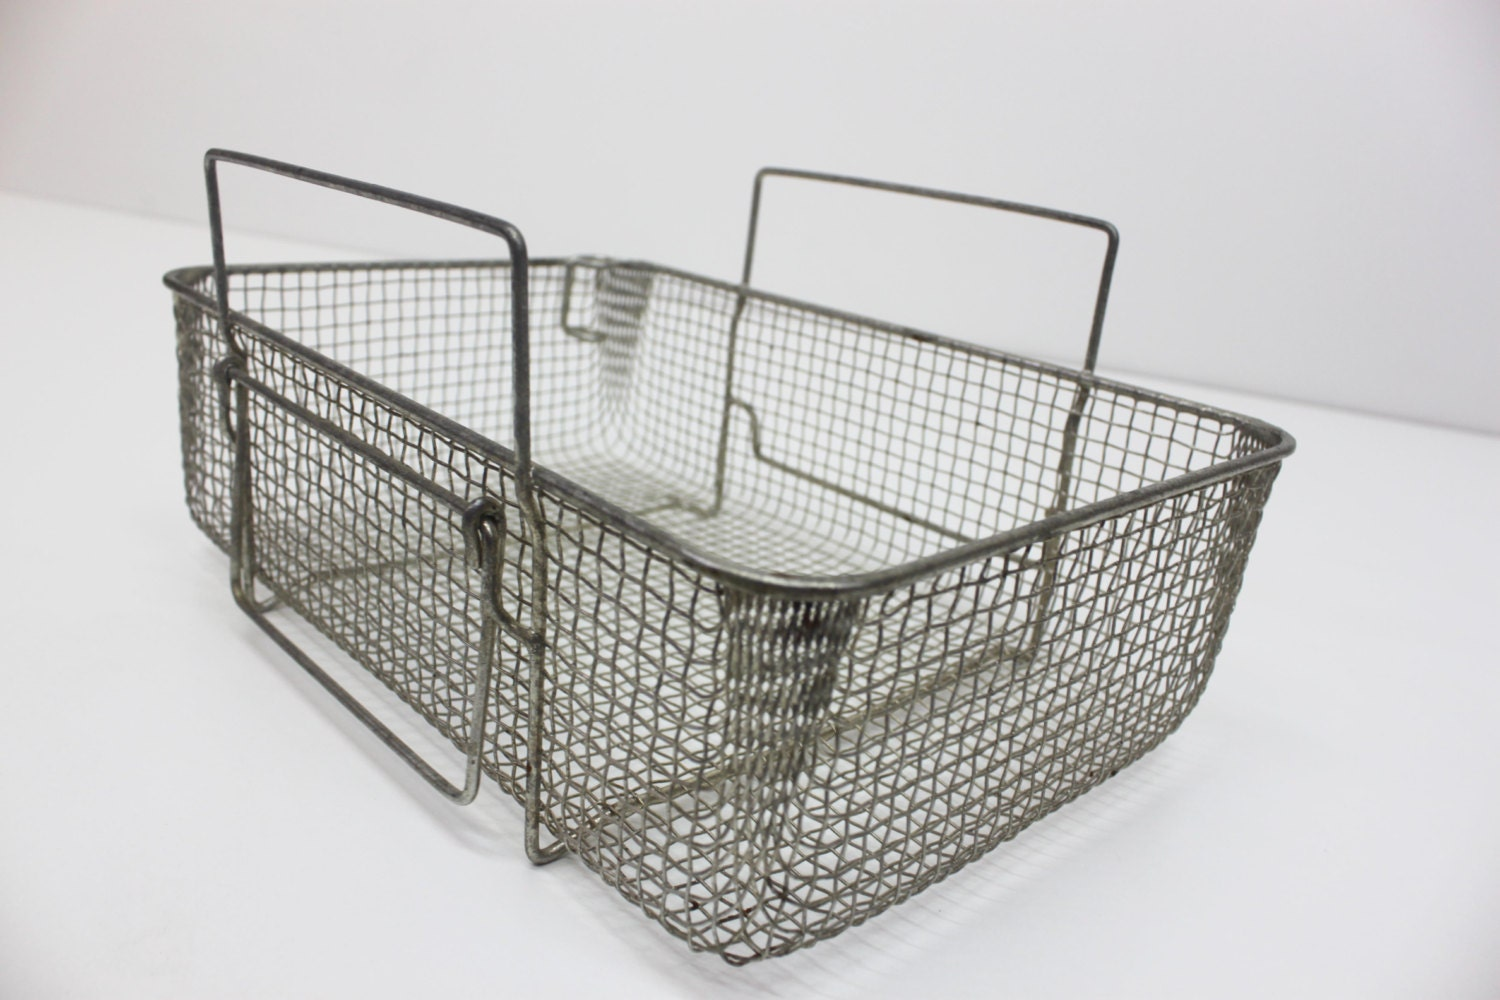 Product - Rectangular Antique Galvanized Metal Baskets, Set of 2. Product Image. Price $ Product Title. Rectangular Antique Galvanized Metal Baskets, Set of 2. Product - White wire metal rectanguler basket with drop handle. Product Image. Price $ 6. Product Title. White wire metal rectanguler basket with drop handle. Add To Cart.